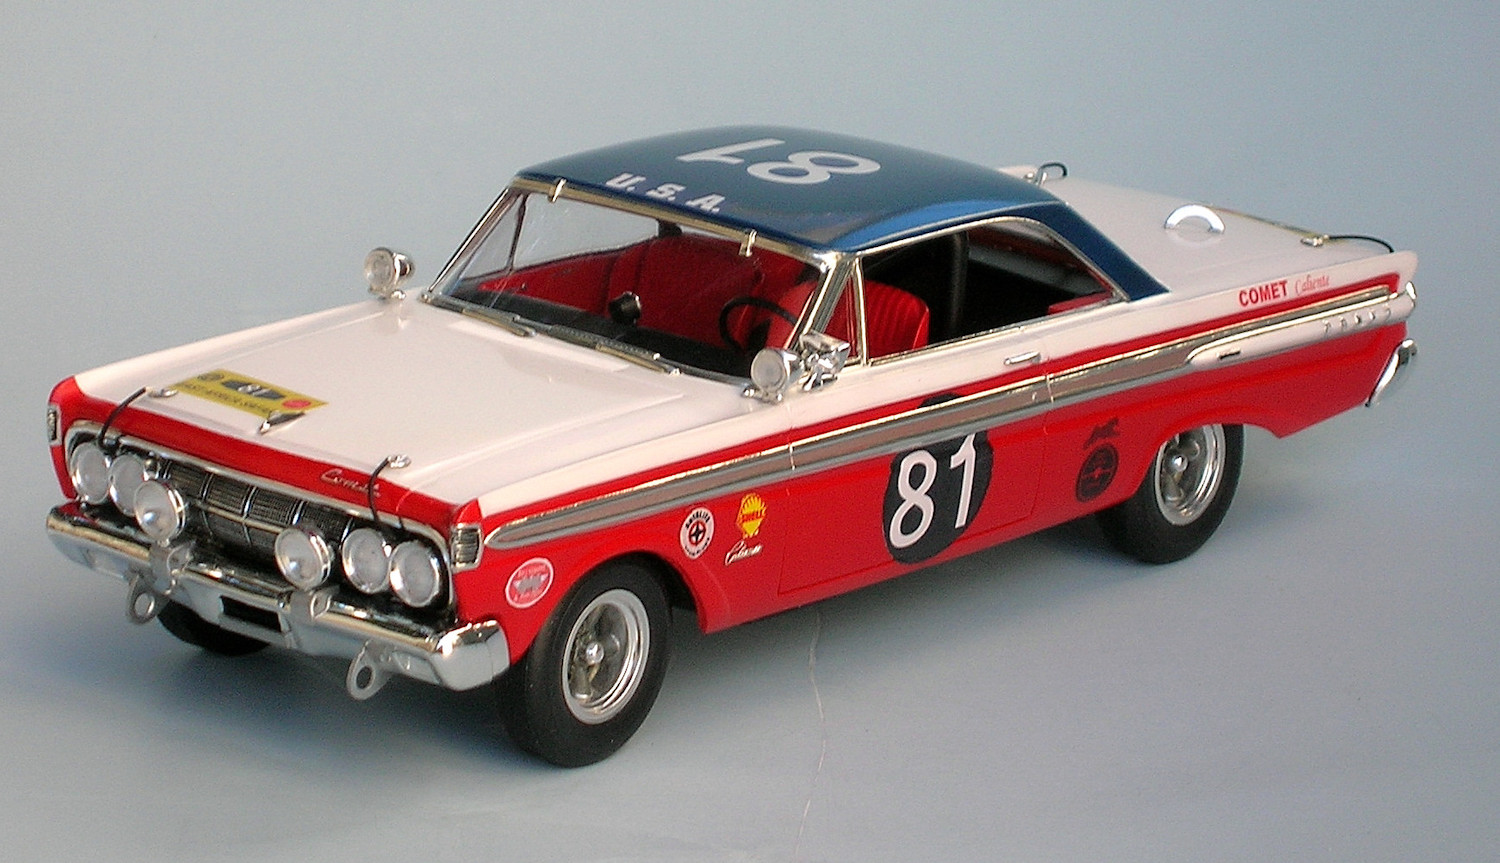 1981 mercury comet race car model number 81